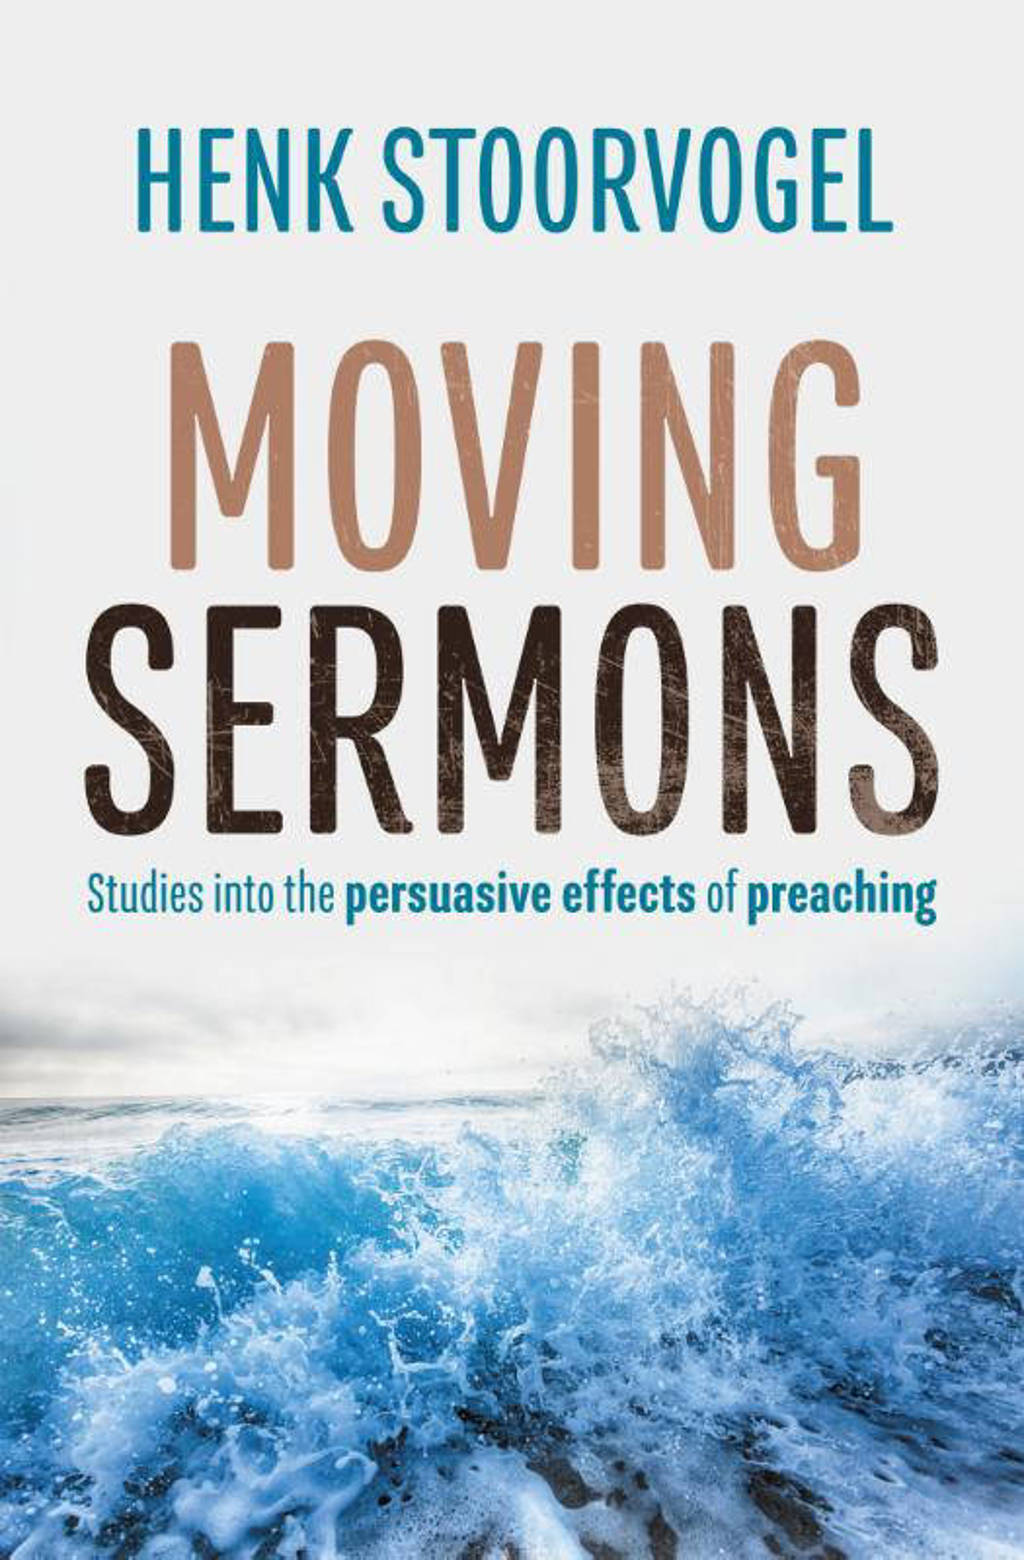 Moving Sermons - Henk Stoorvogel